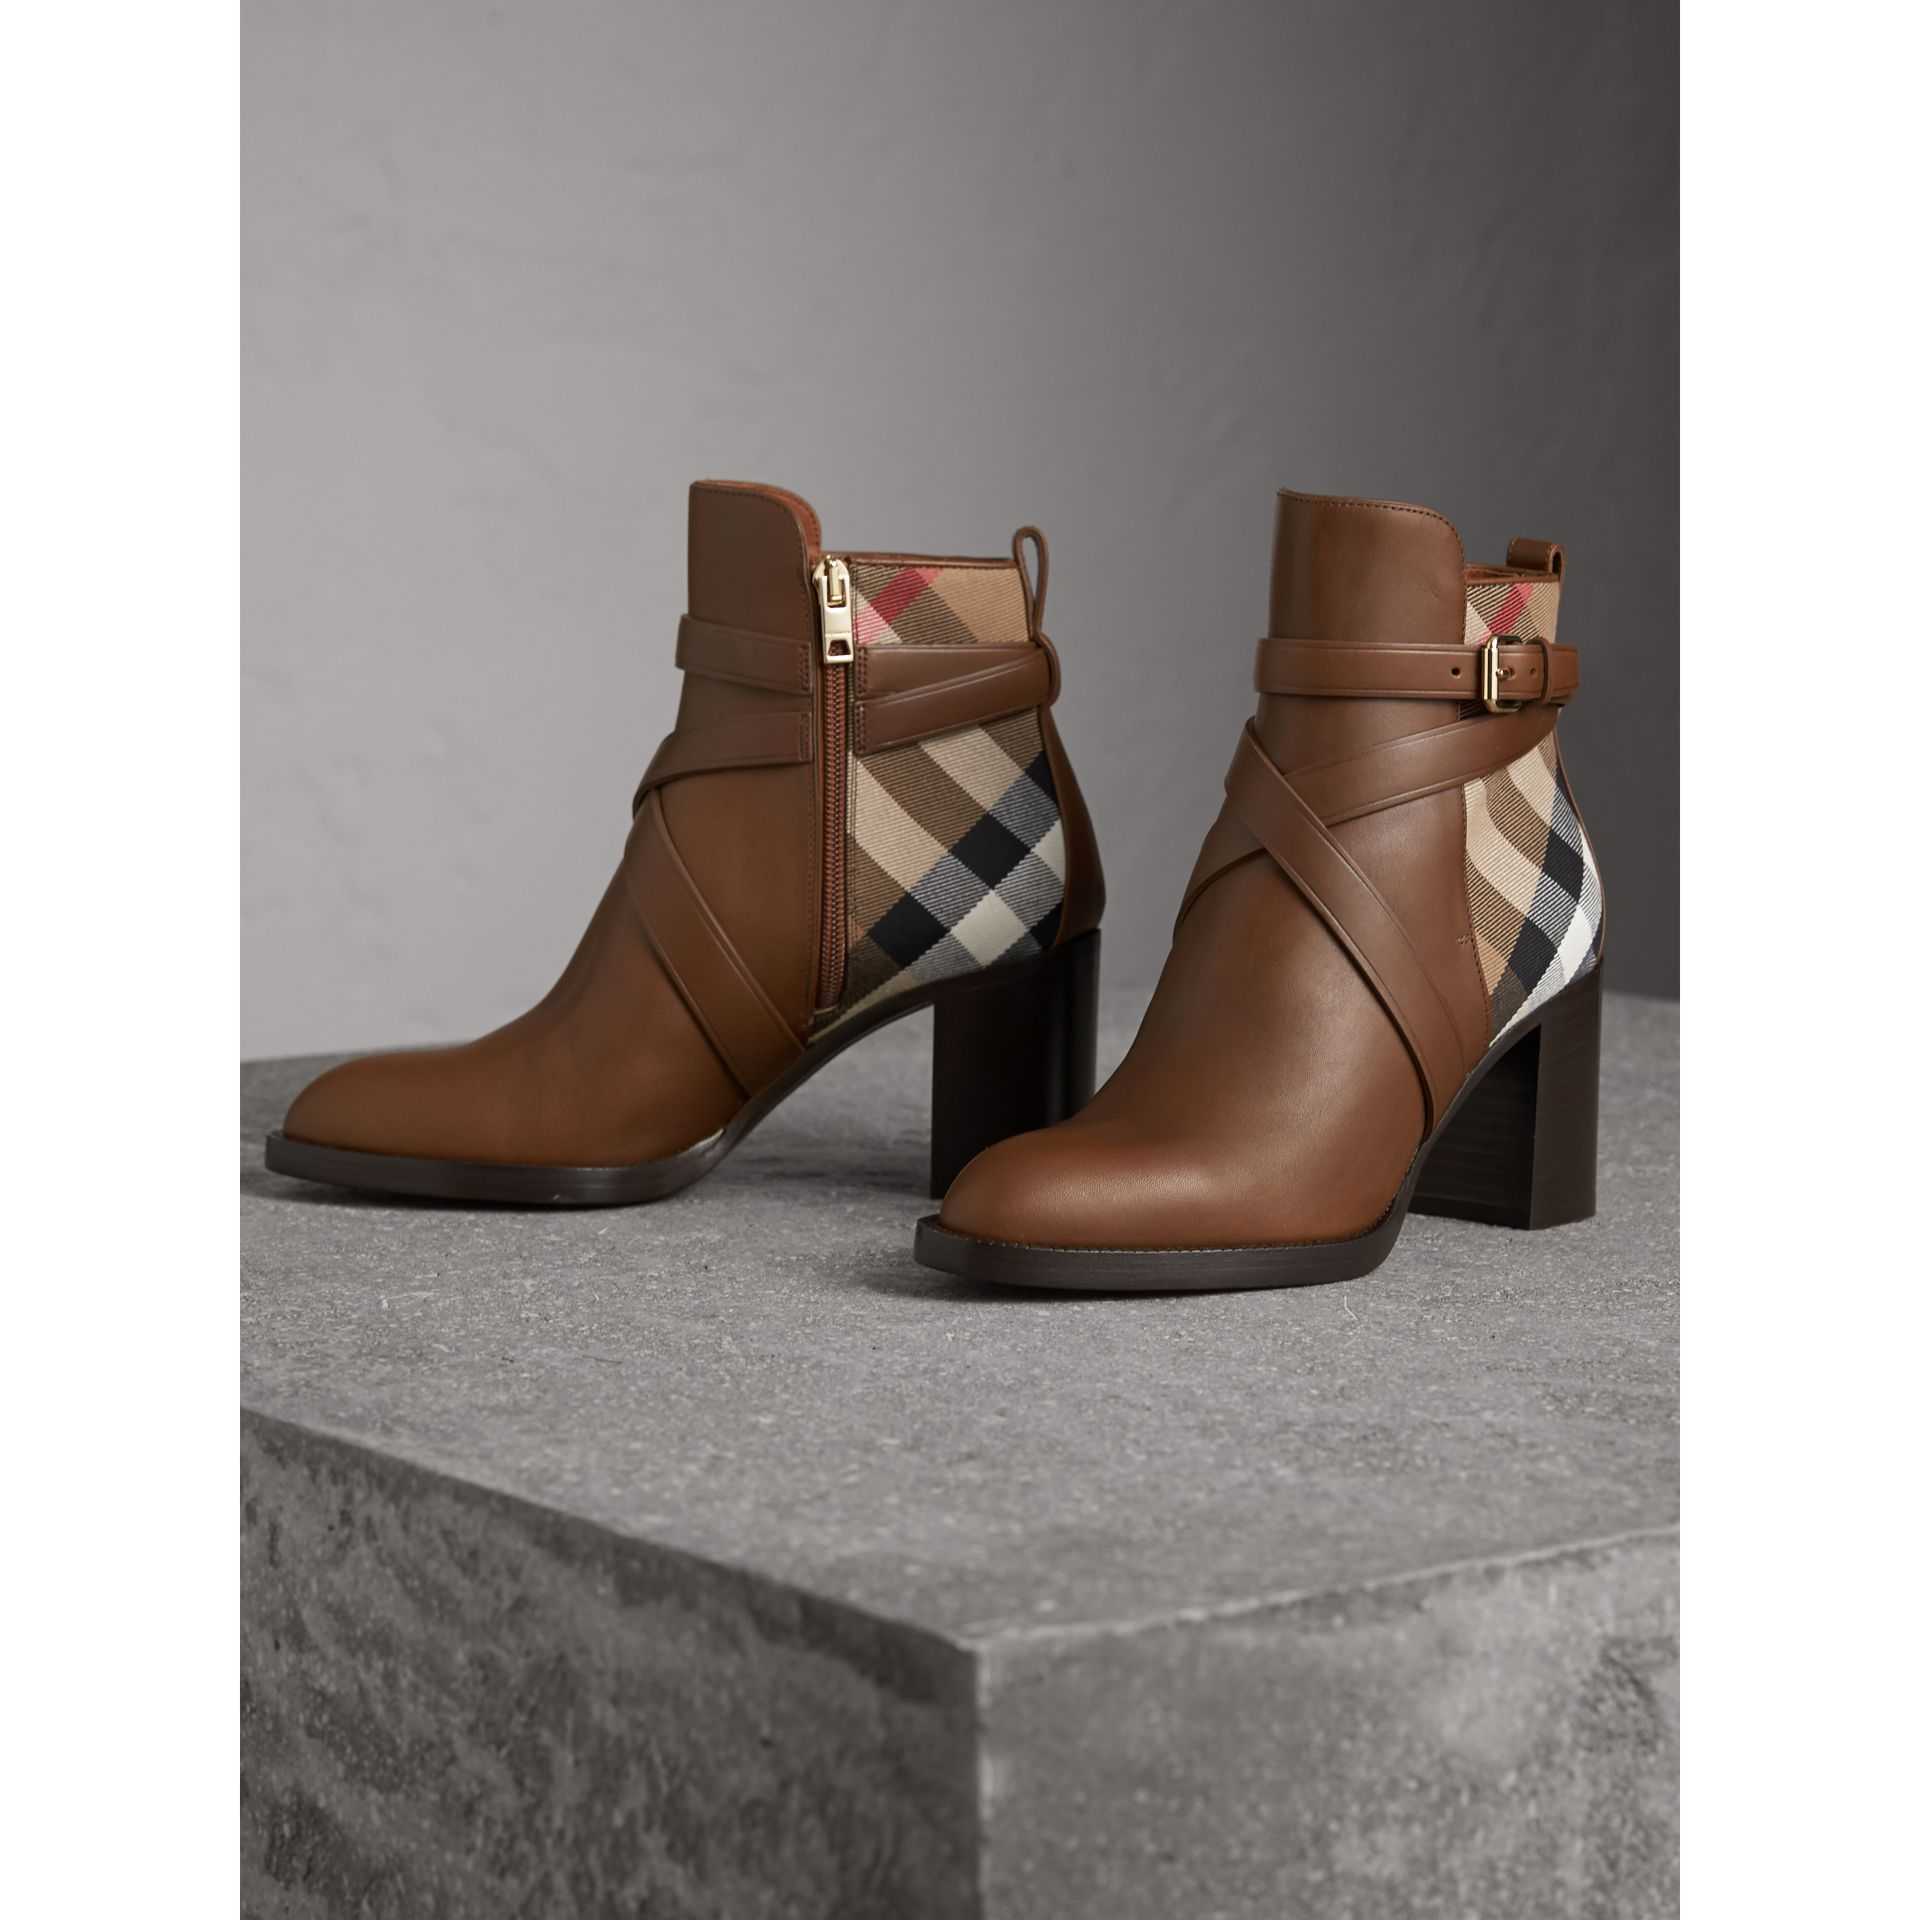 Bottines en cuir et coton House check (Camel Vif) - Femme | Burberry - photo de la galerie 5